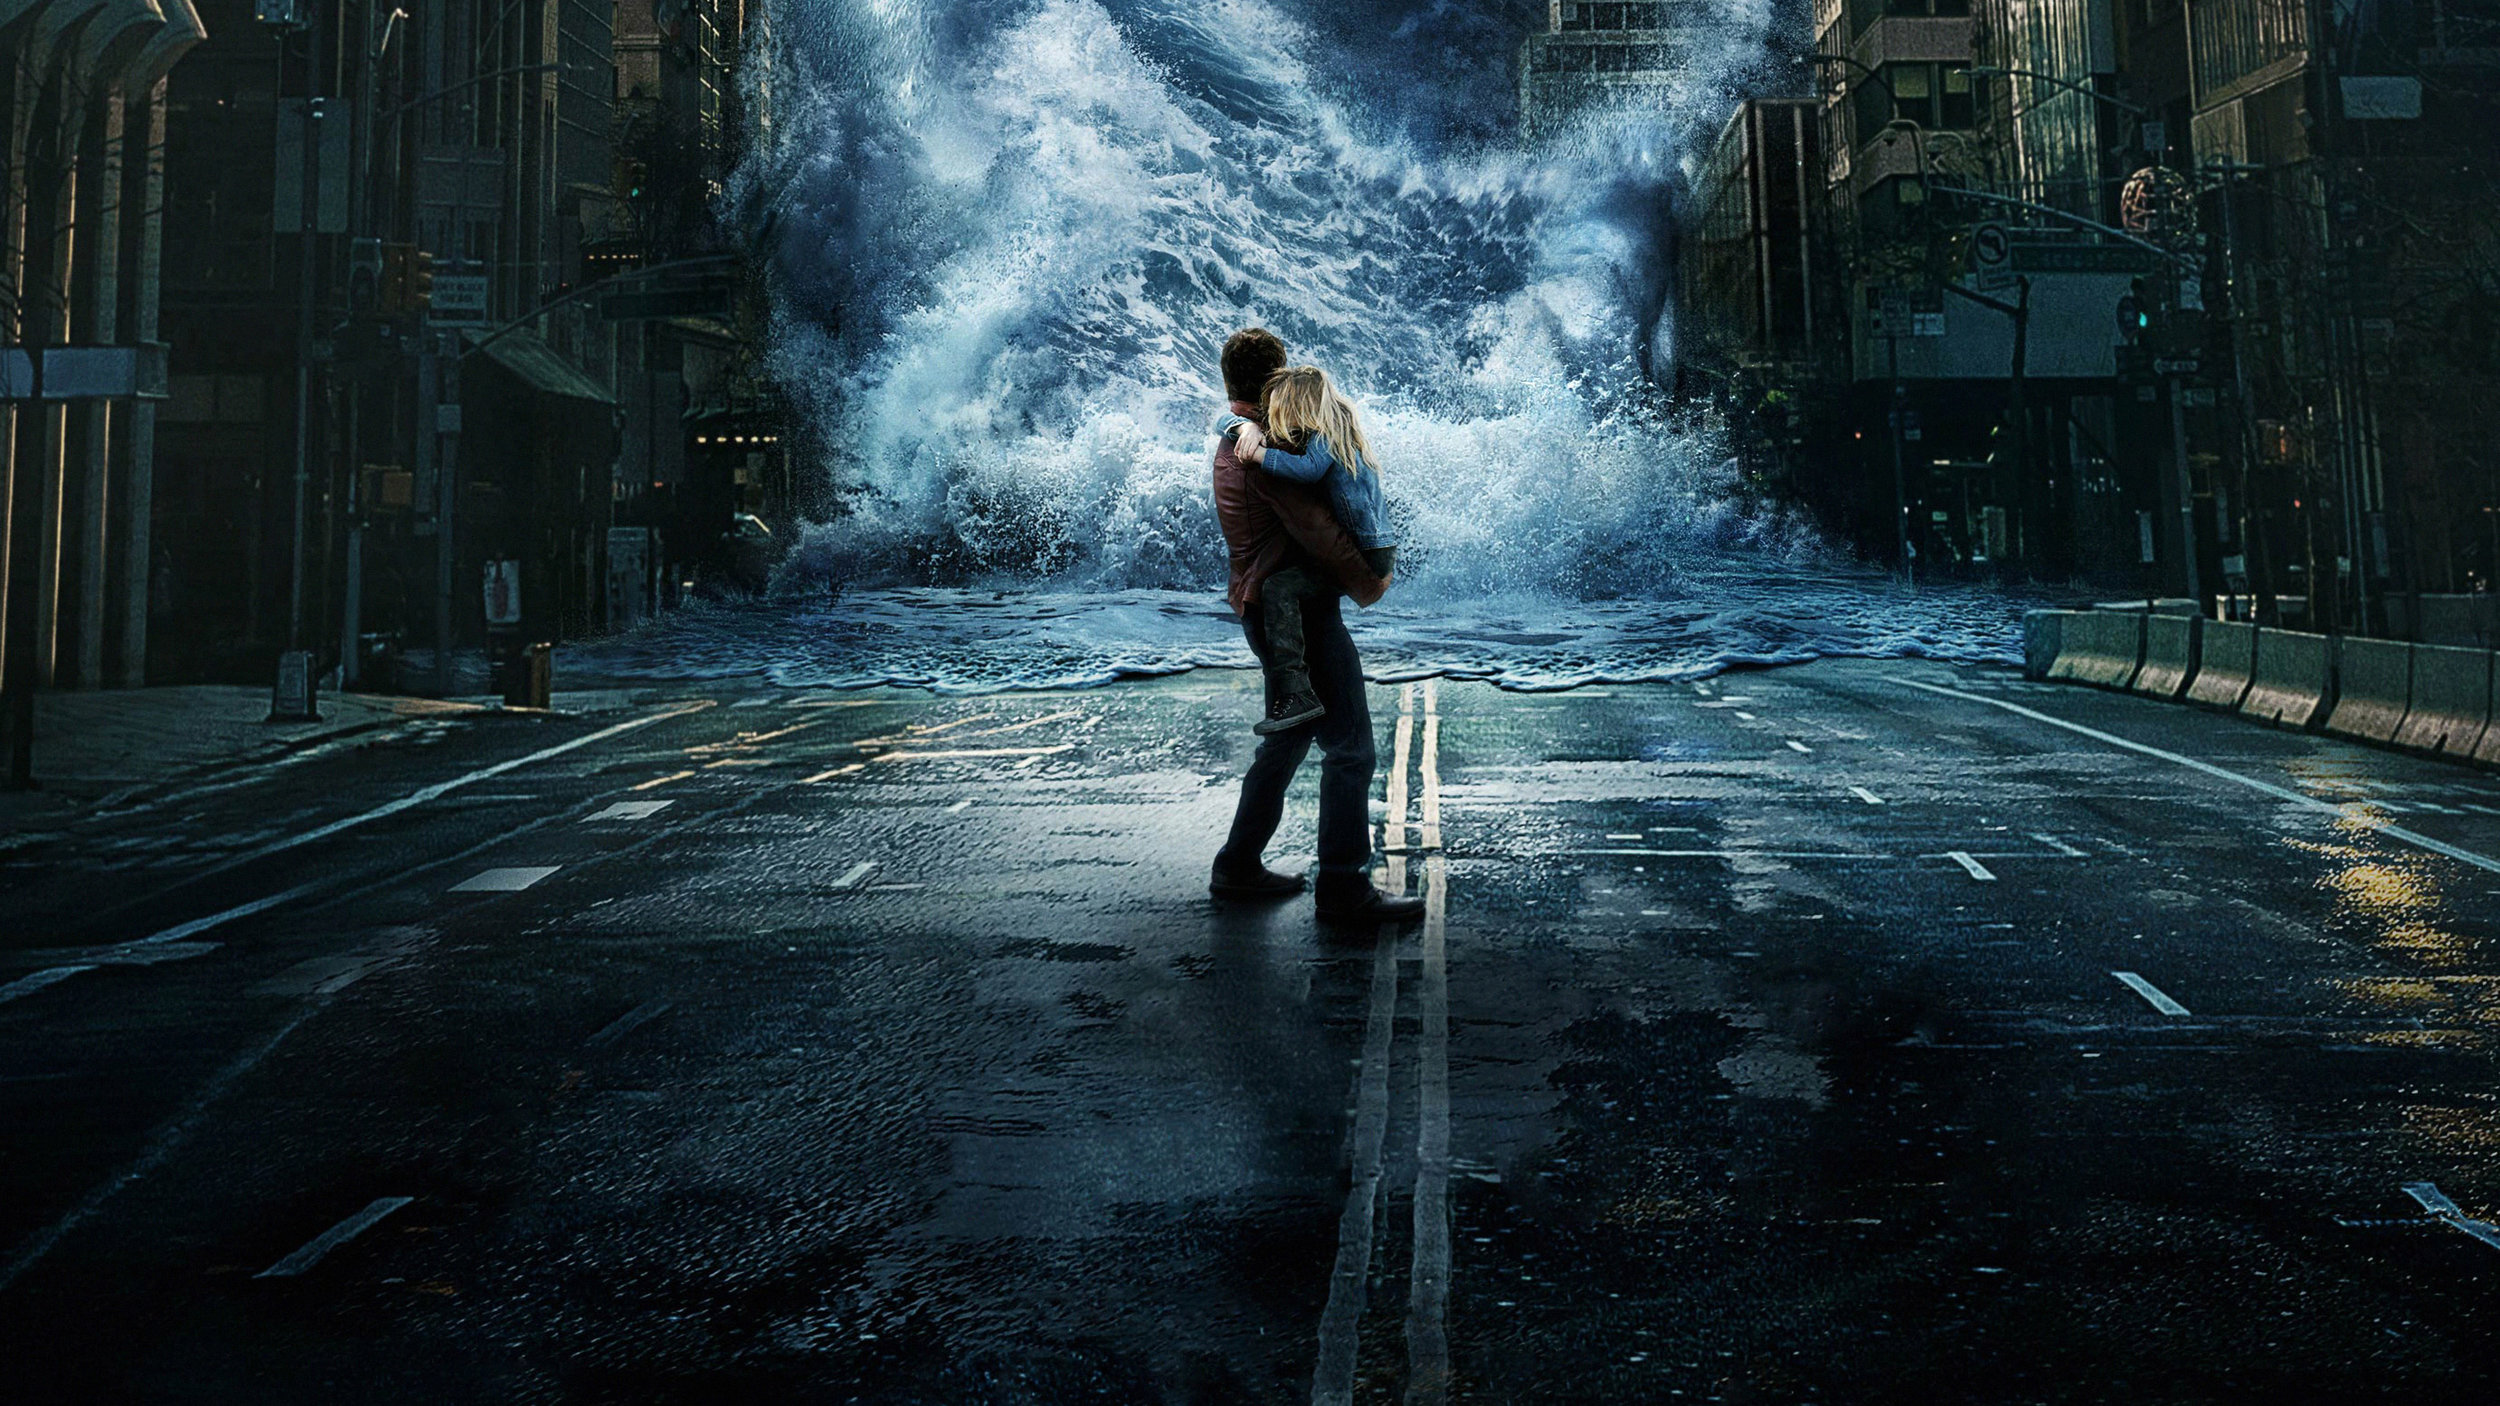 59283_geostorm-2017-movie_5120x2880.jpg